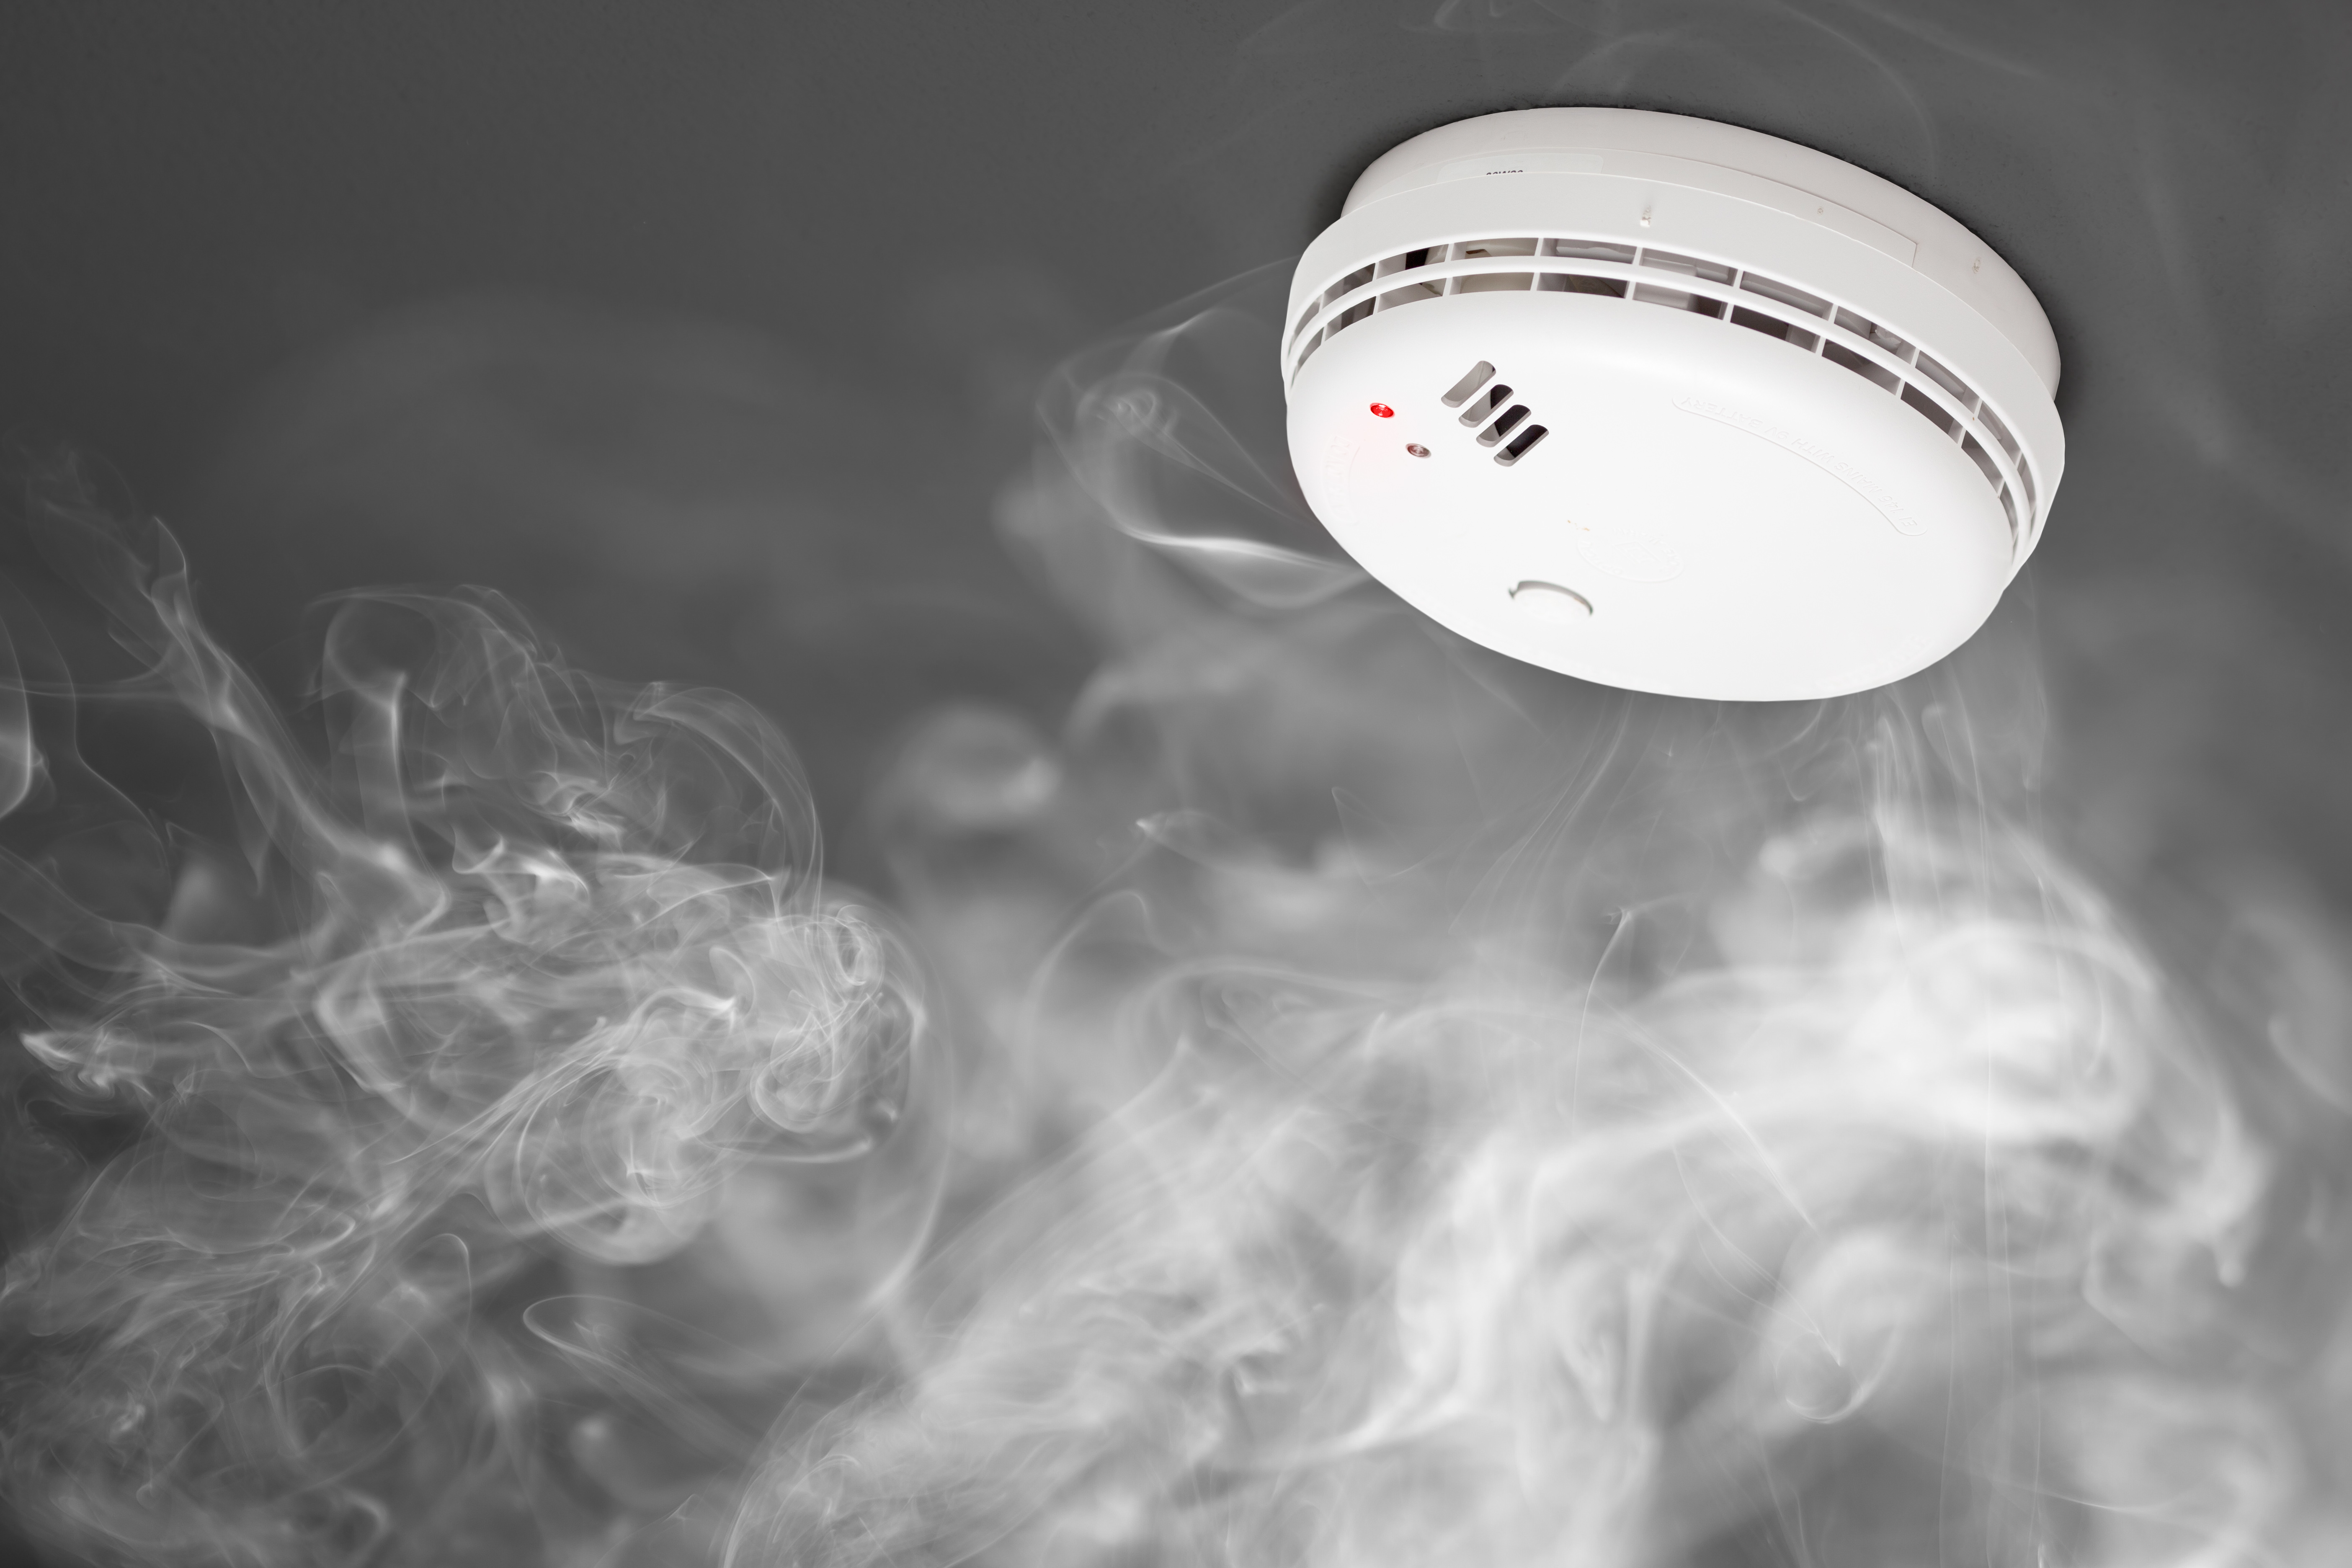 At Home, Fire Prevention, Fire Safety, Smoke Detectors